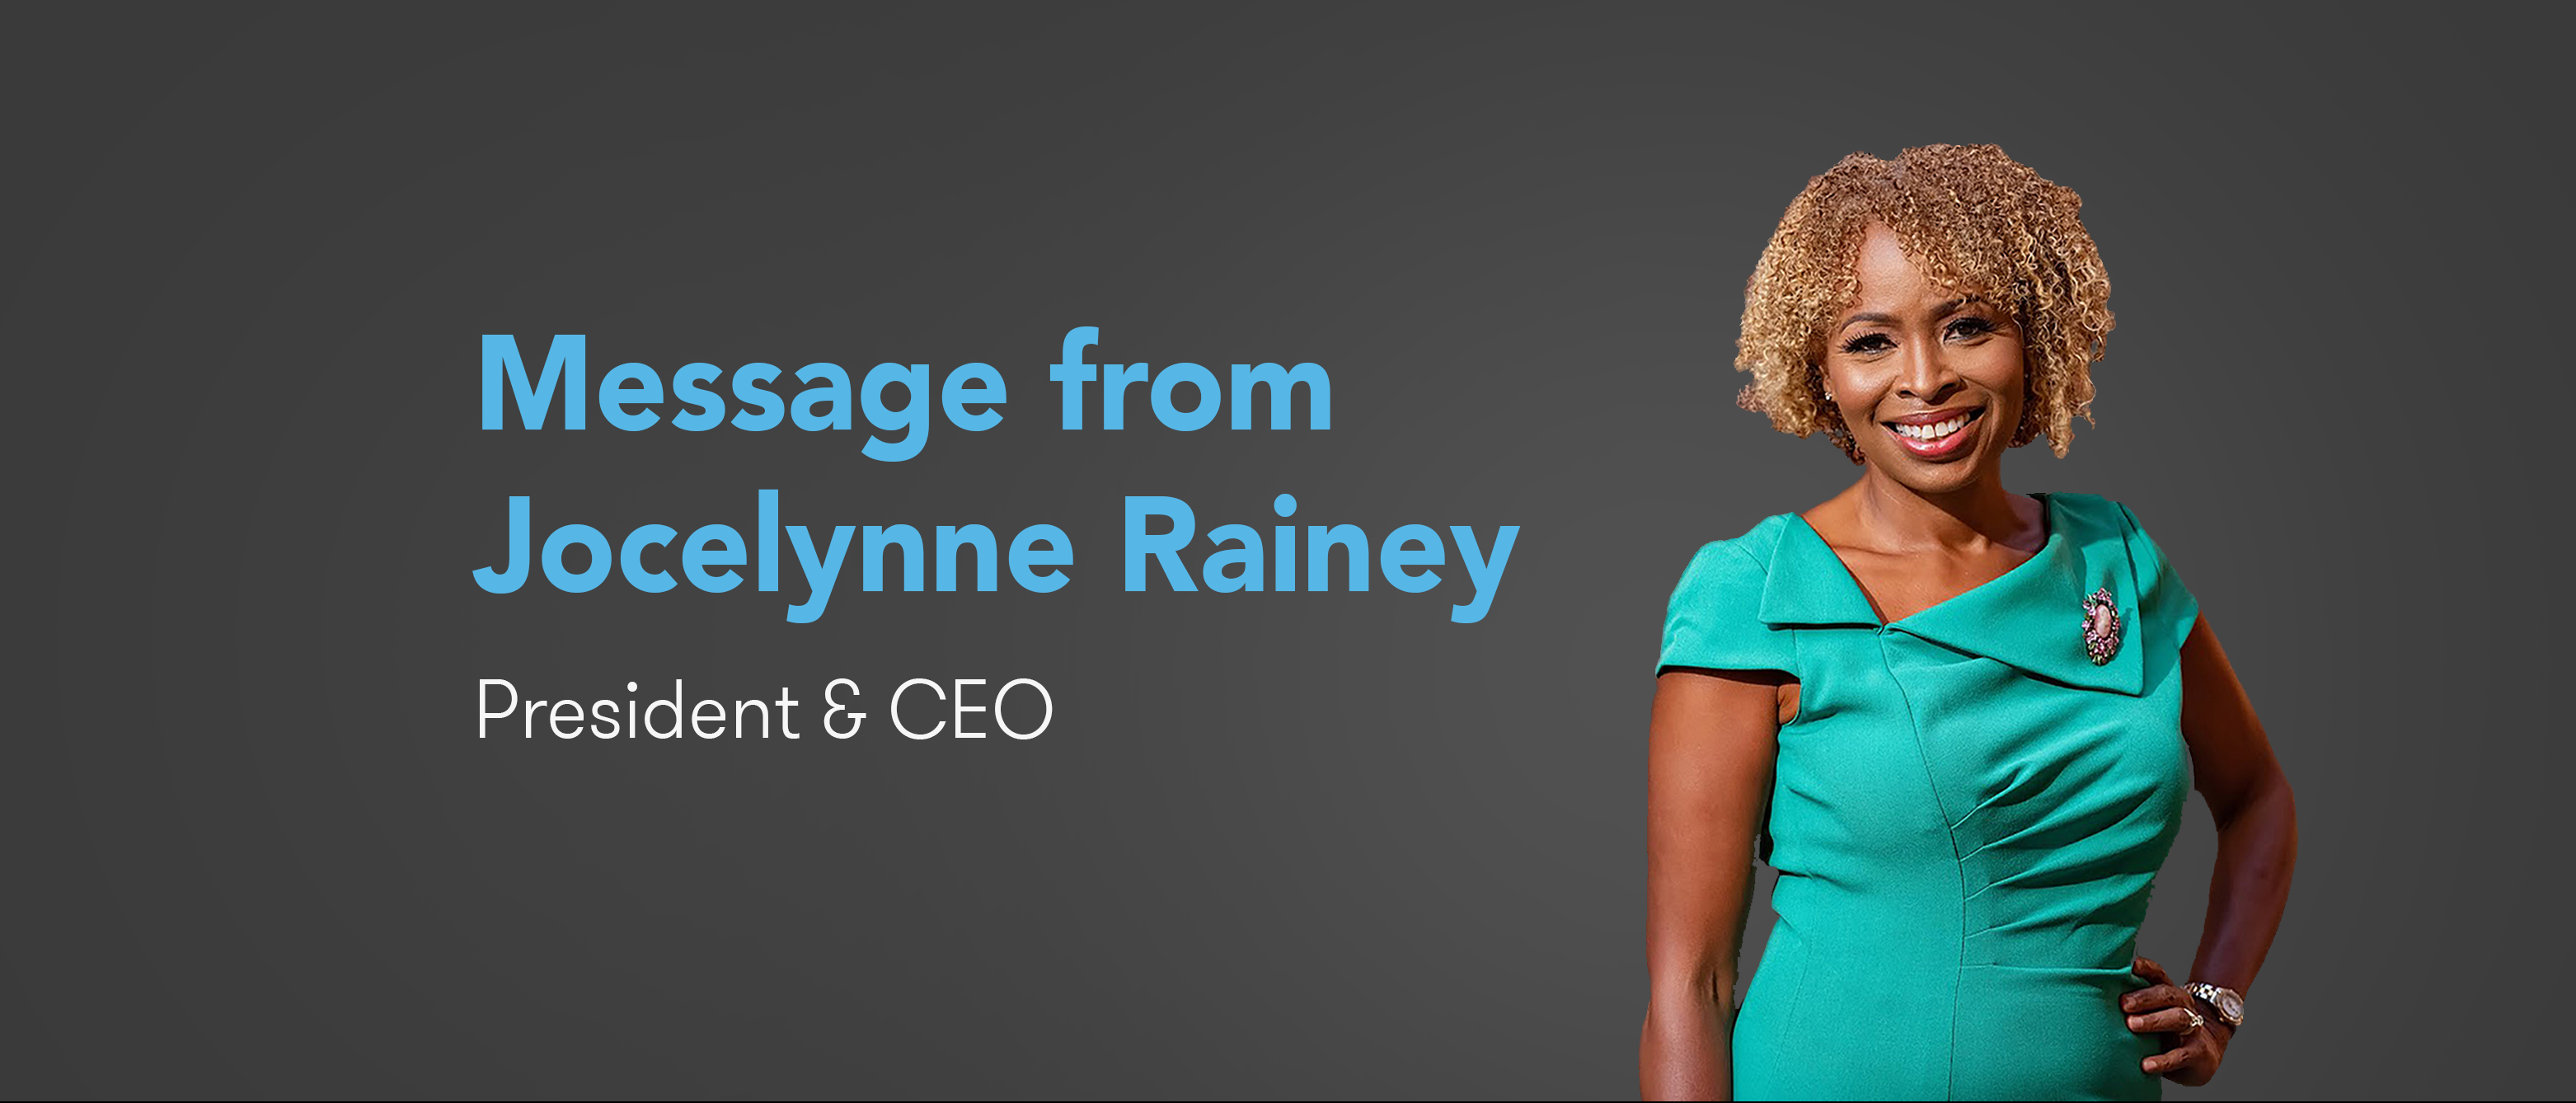 Message from Jocelynne Rainey